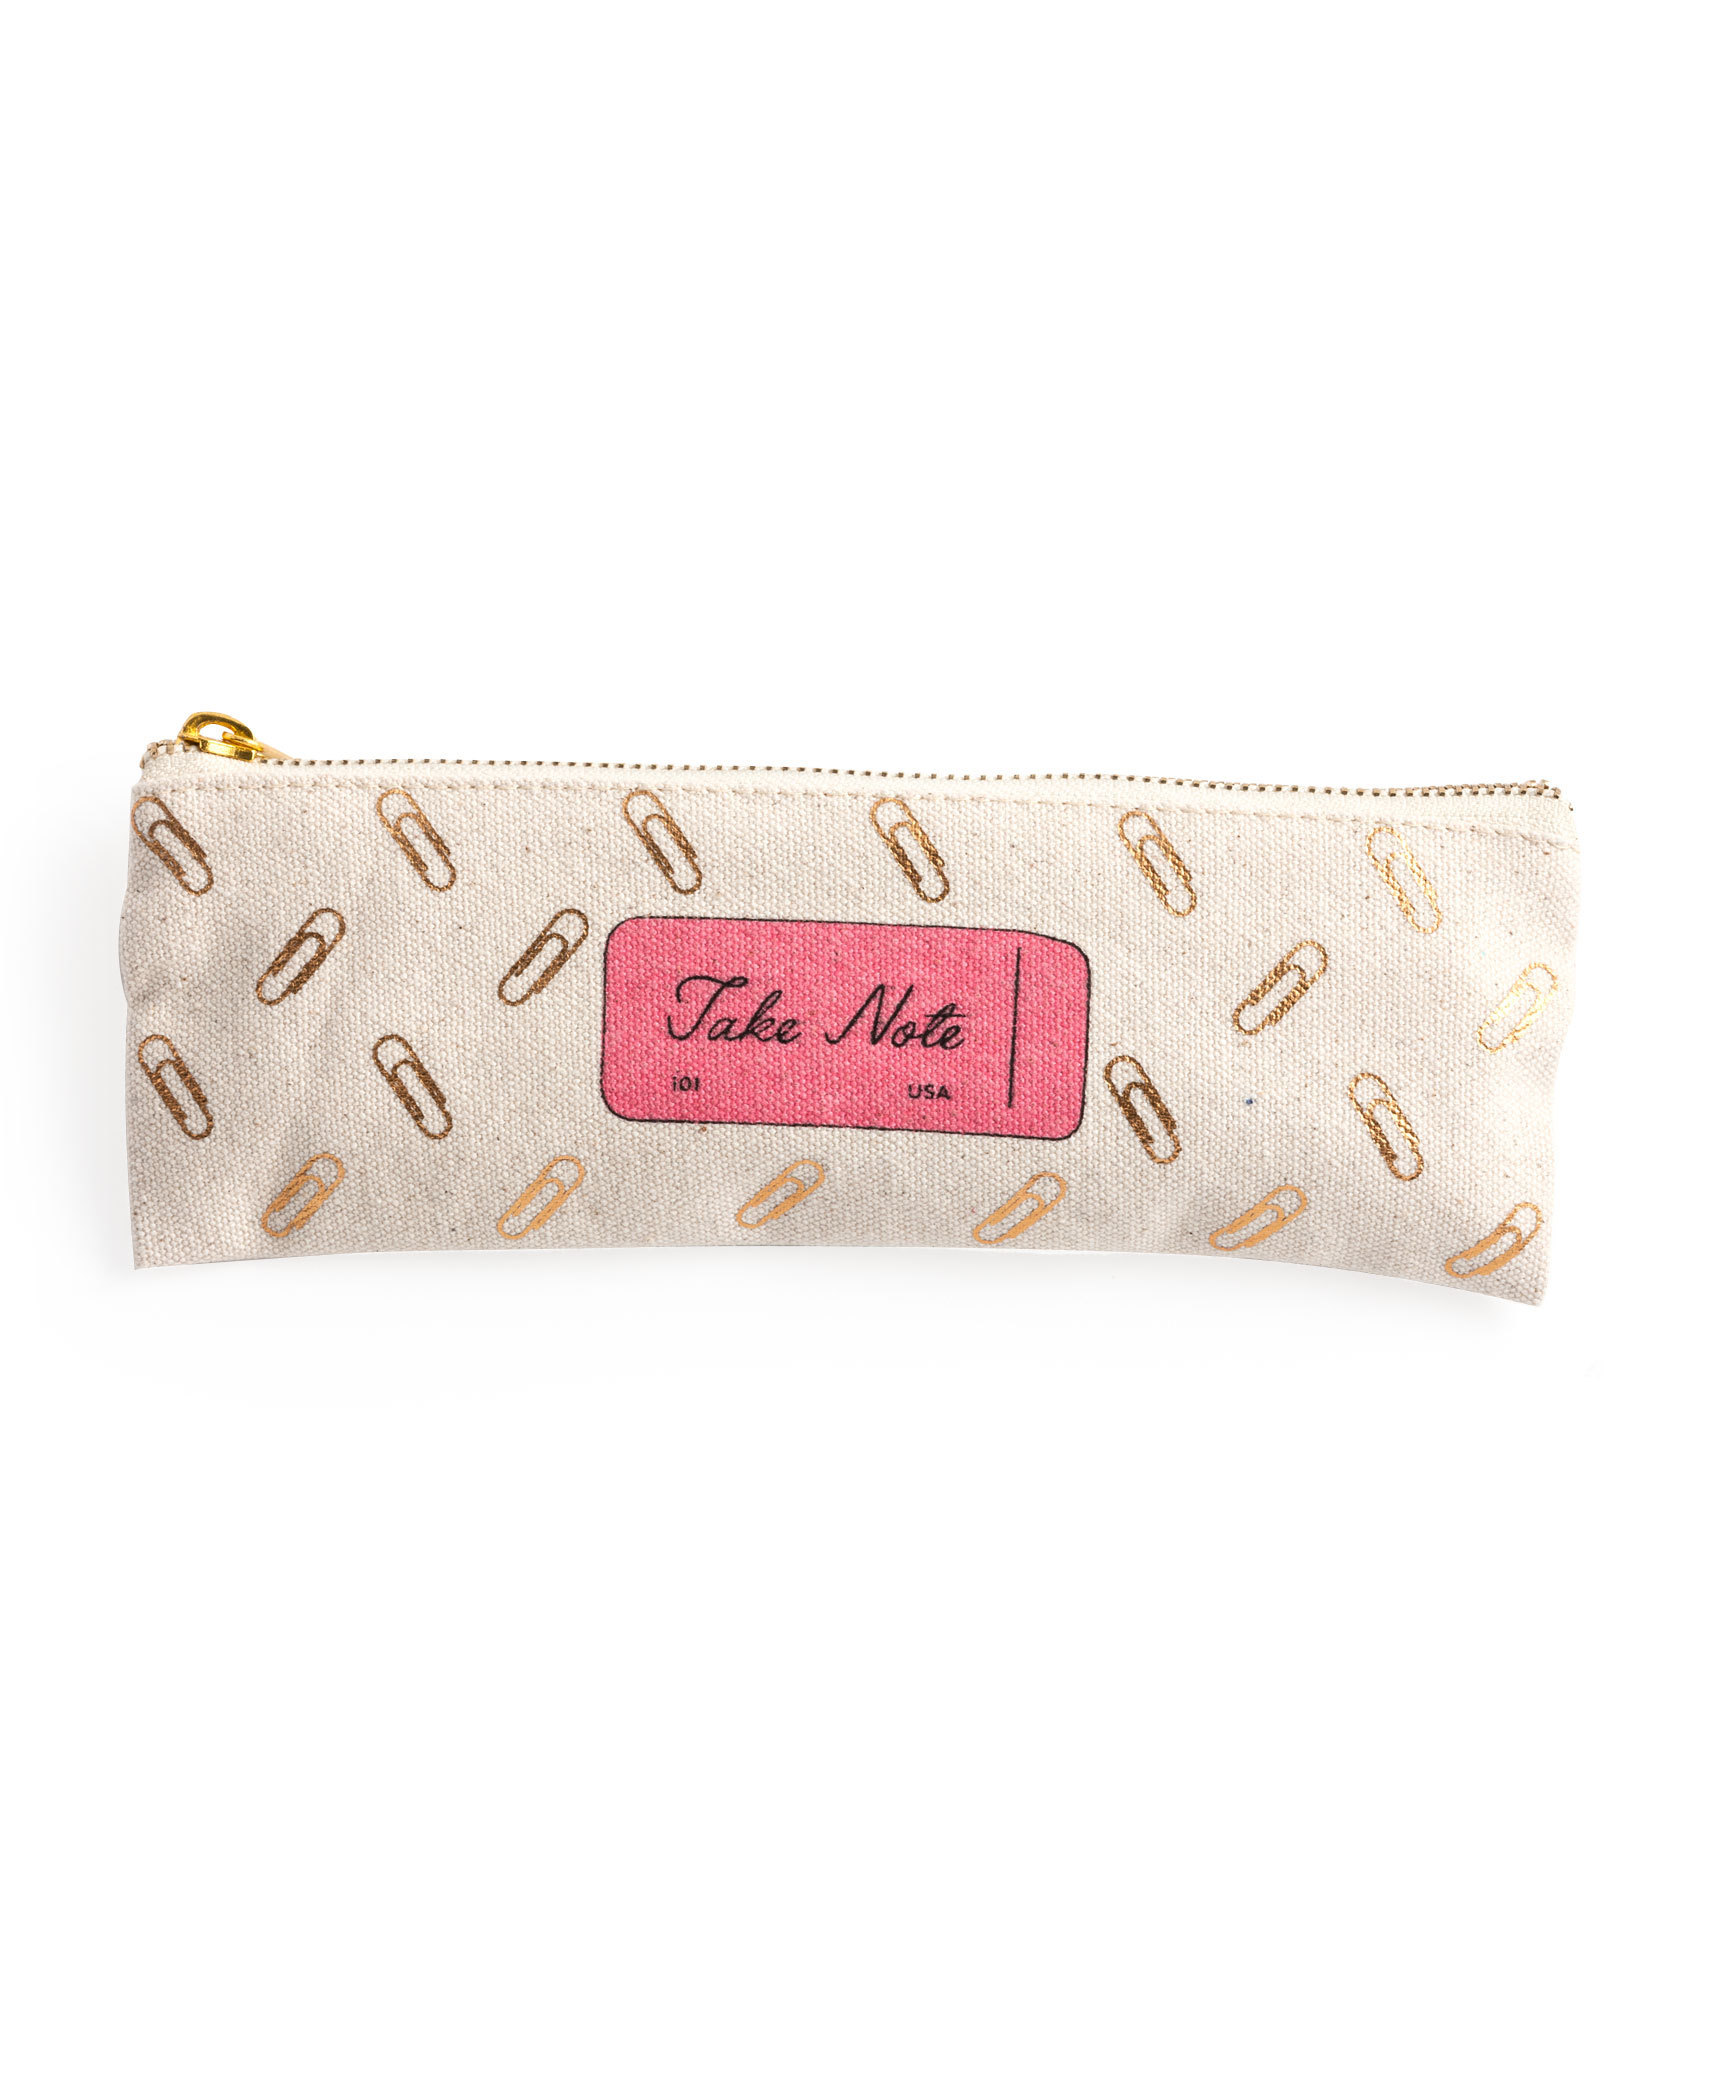 【Rosanna】●日本未入荷●Glam Office Pencil Bag Take Note